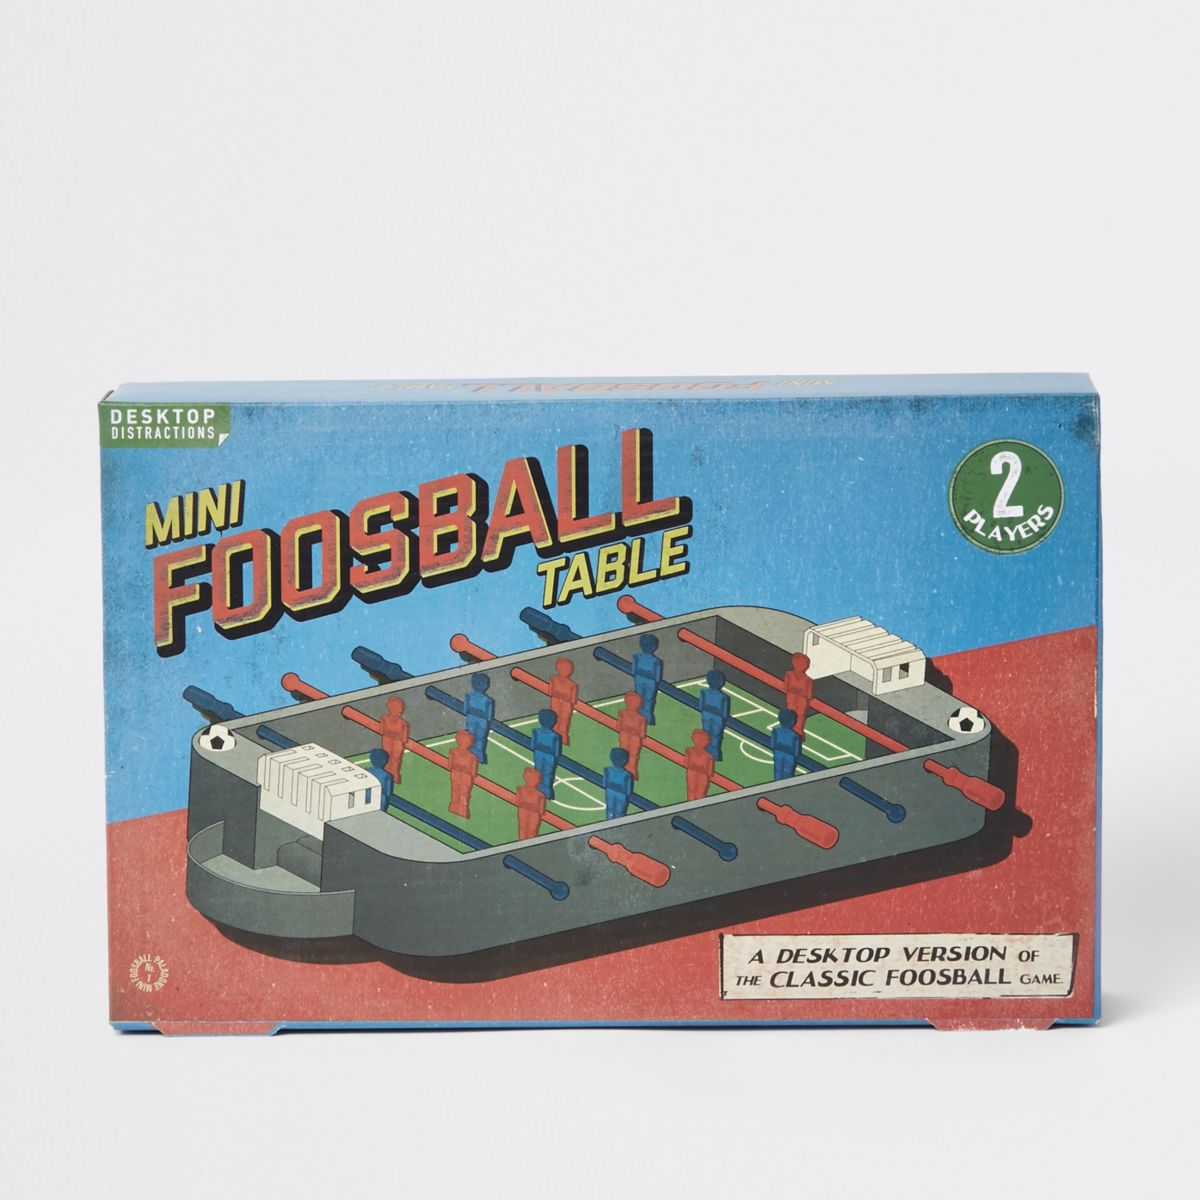 Image result for Grey mini foosball table